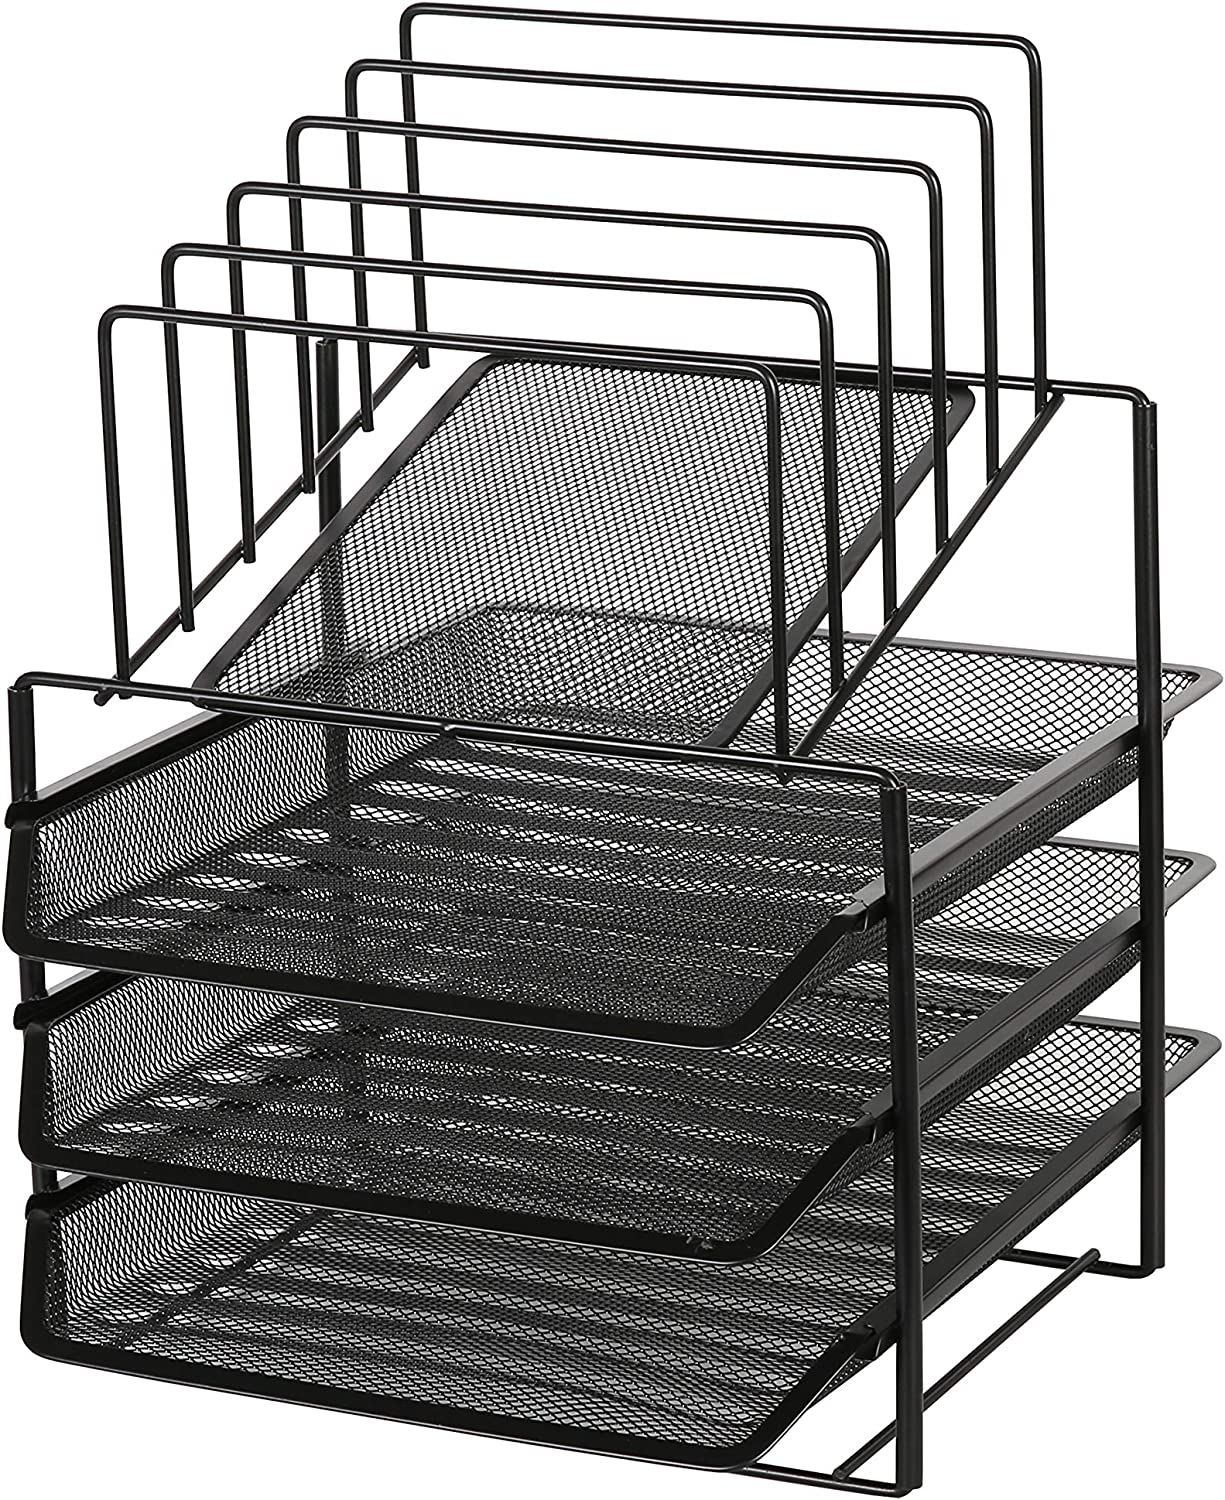 Exerz Desk Organizer Wire Mesh 3 Layer Sliding Letter Trays with 5 Upright Sections/Dividers/Paper Sorter/Desk Multifunctional File Holder Filing Shelves for Office, School Black (EX2428-BLK)